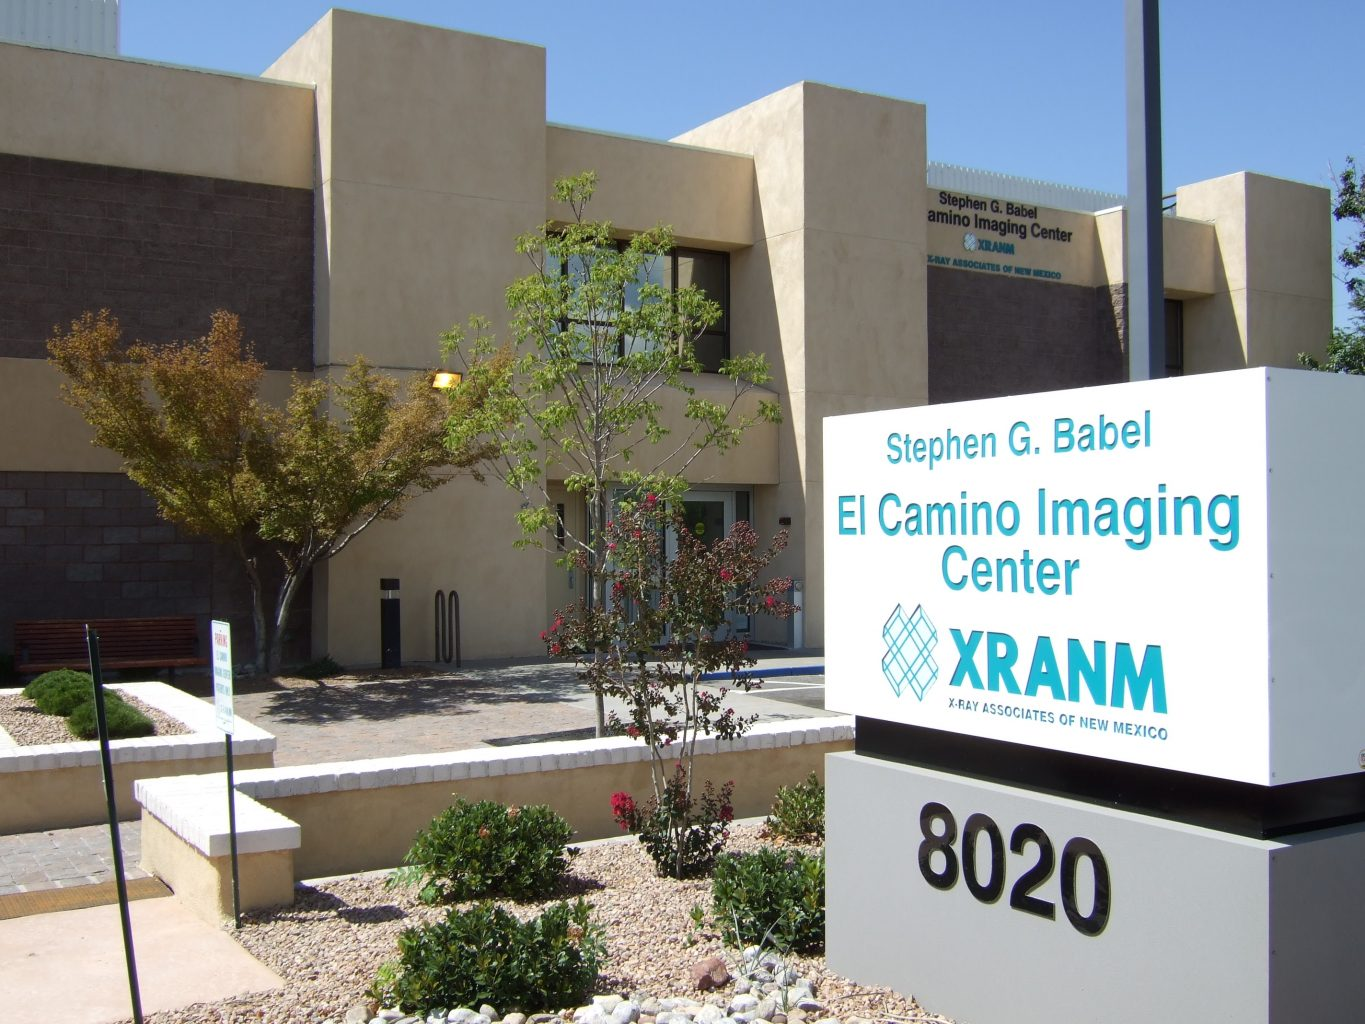 El Camino Imaging Center